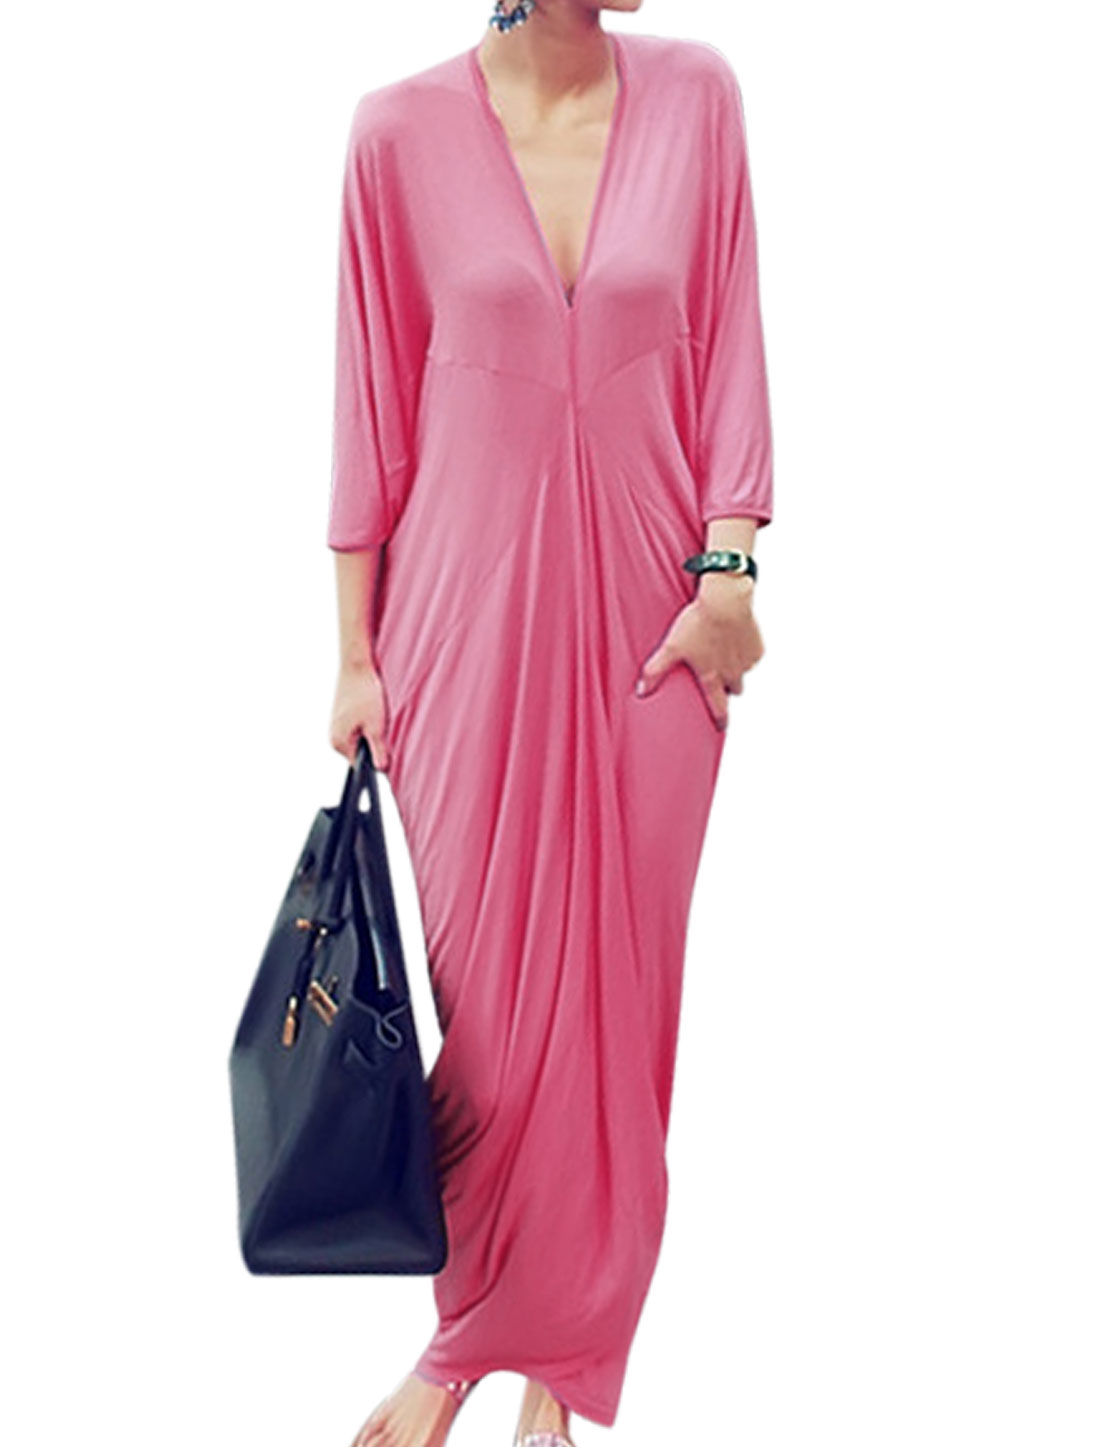 Loose Fit Stylish Deep V Neck Batwing Sleeve Maxi Dress for Lady Pink M